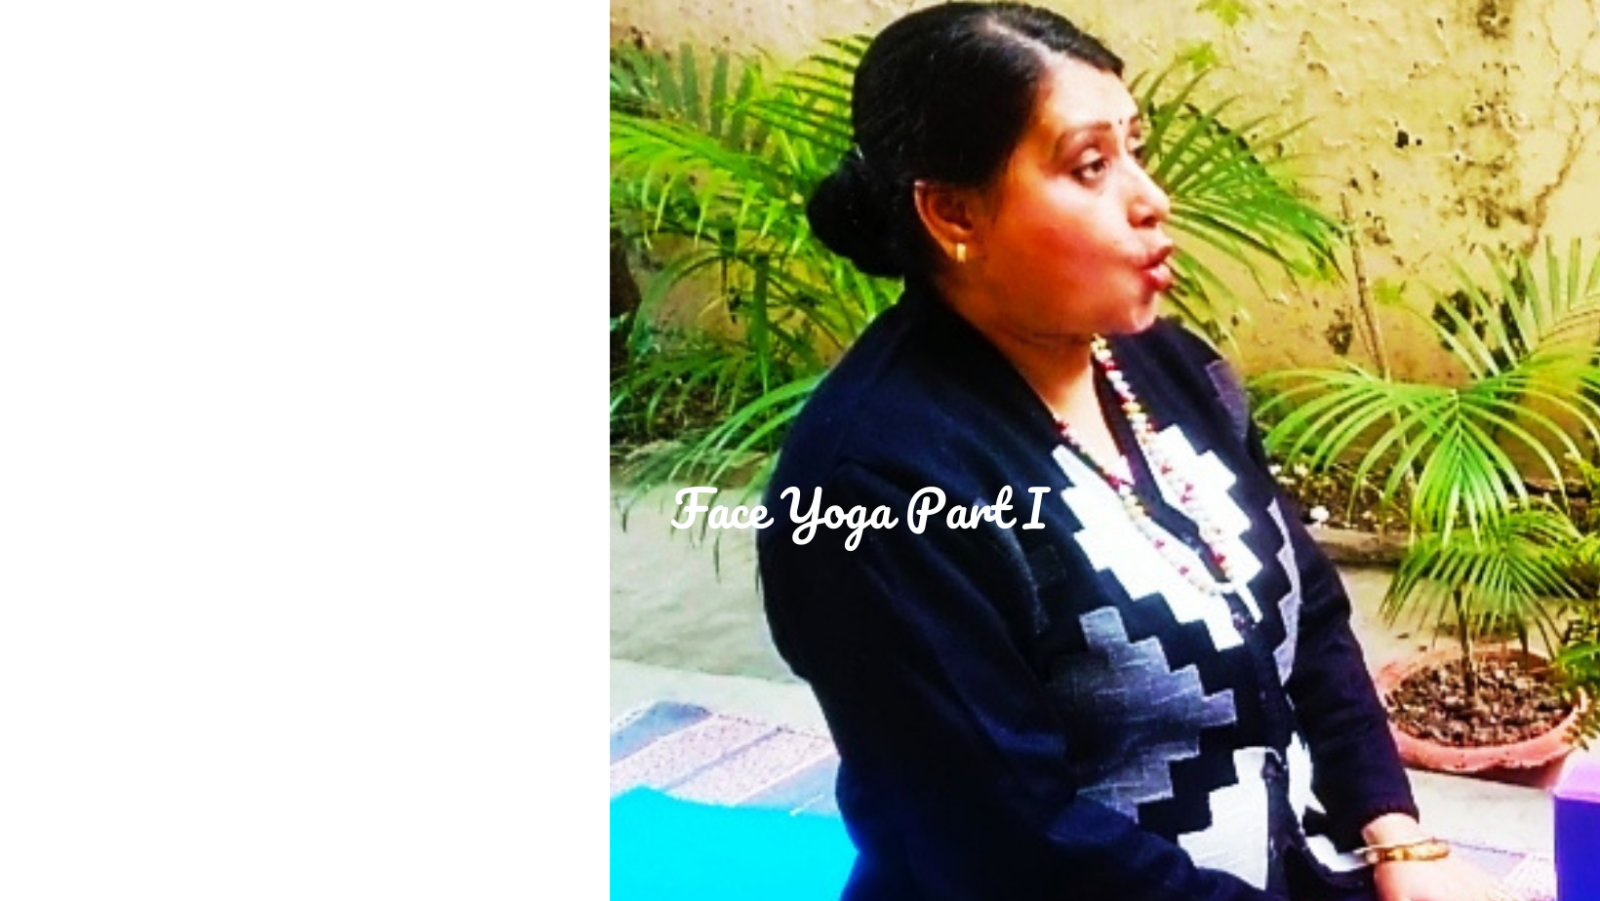 Face yoga part 1 featured image